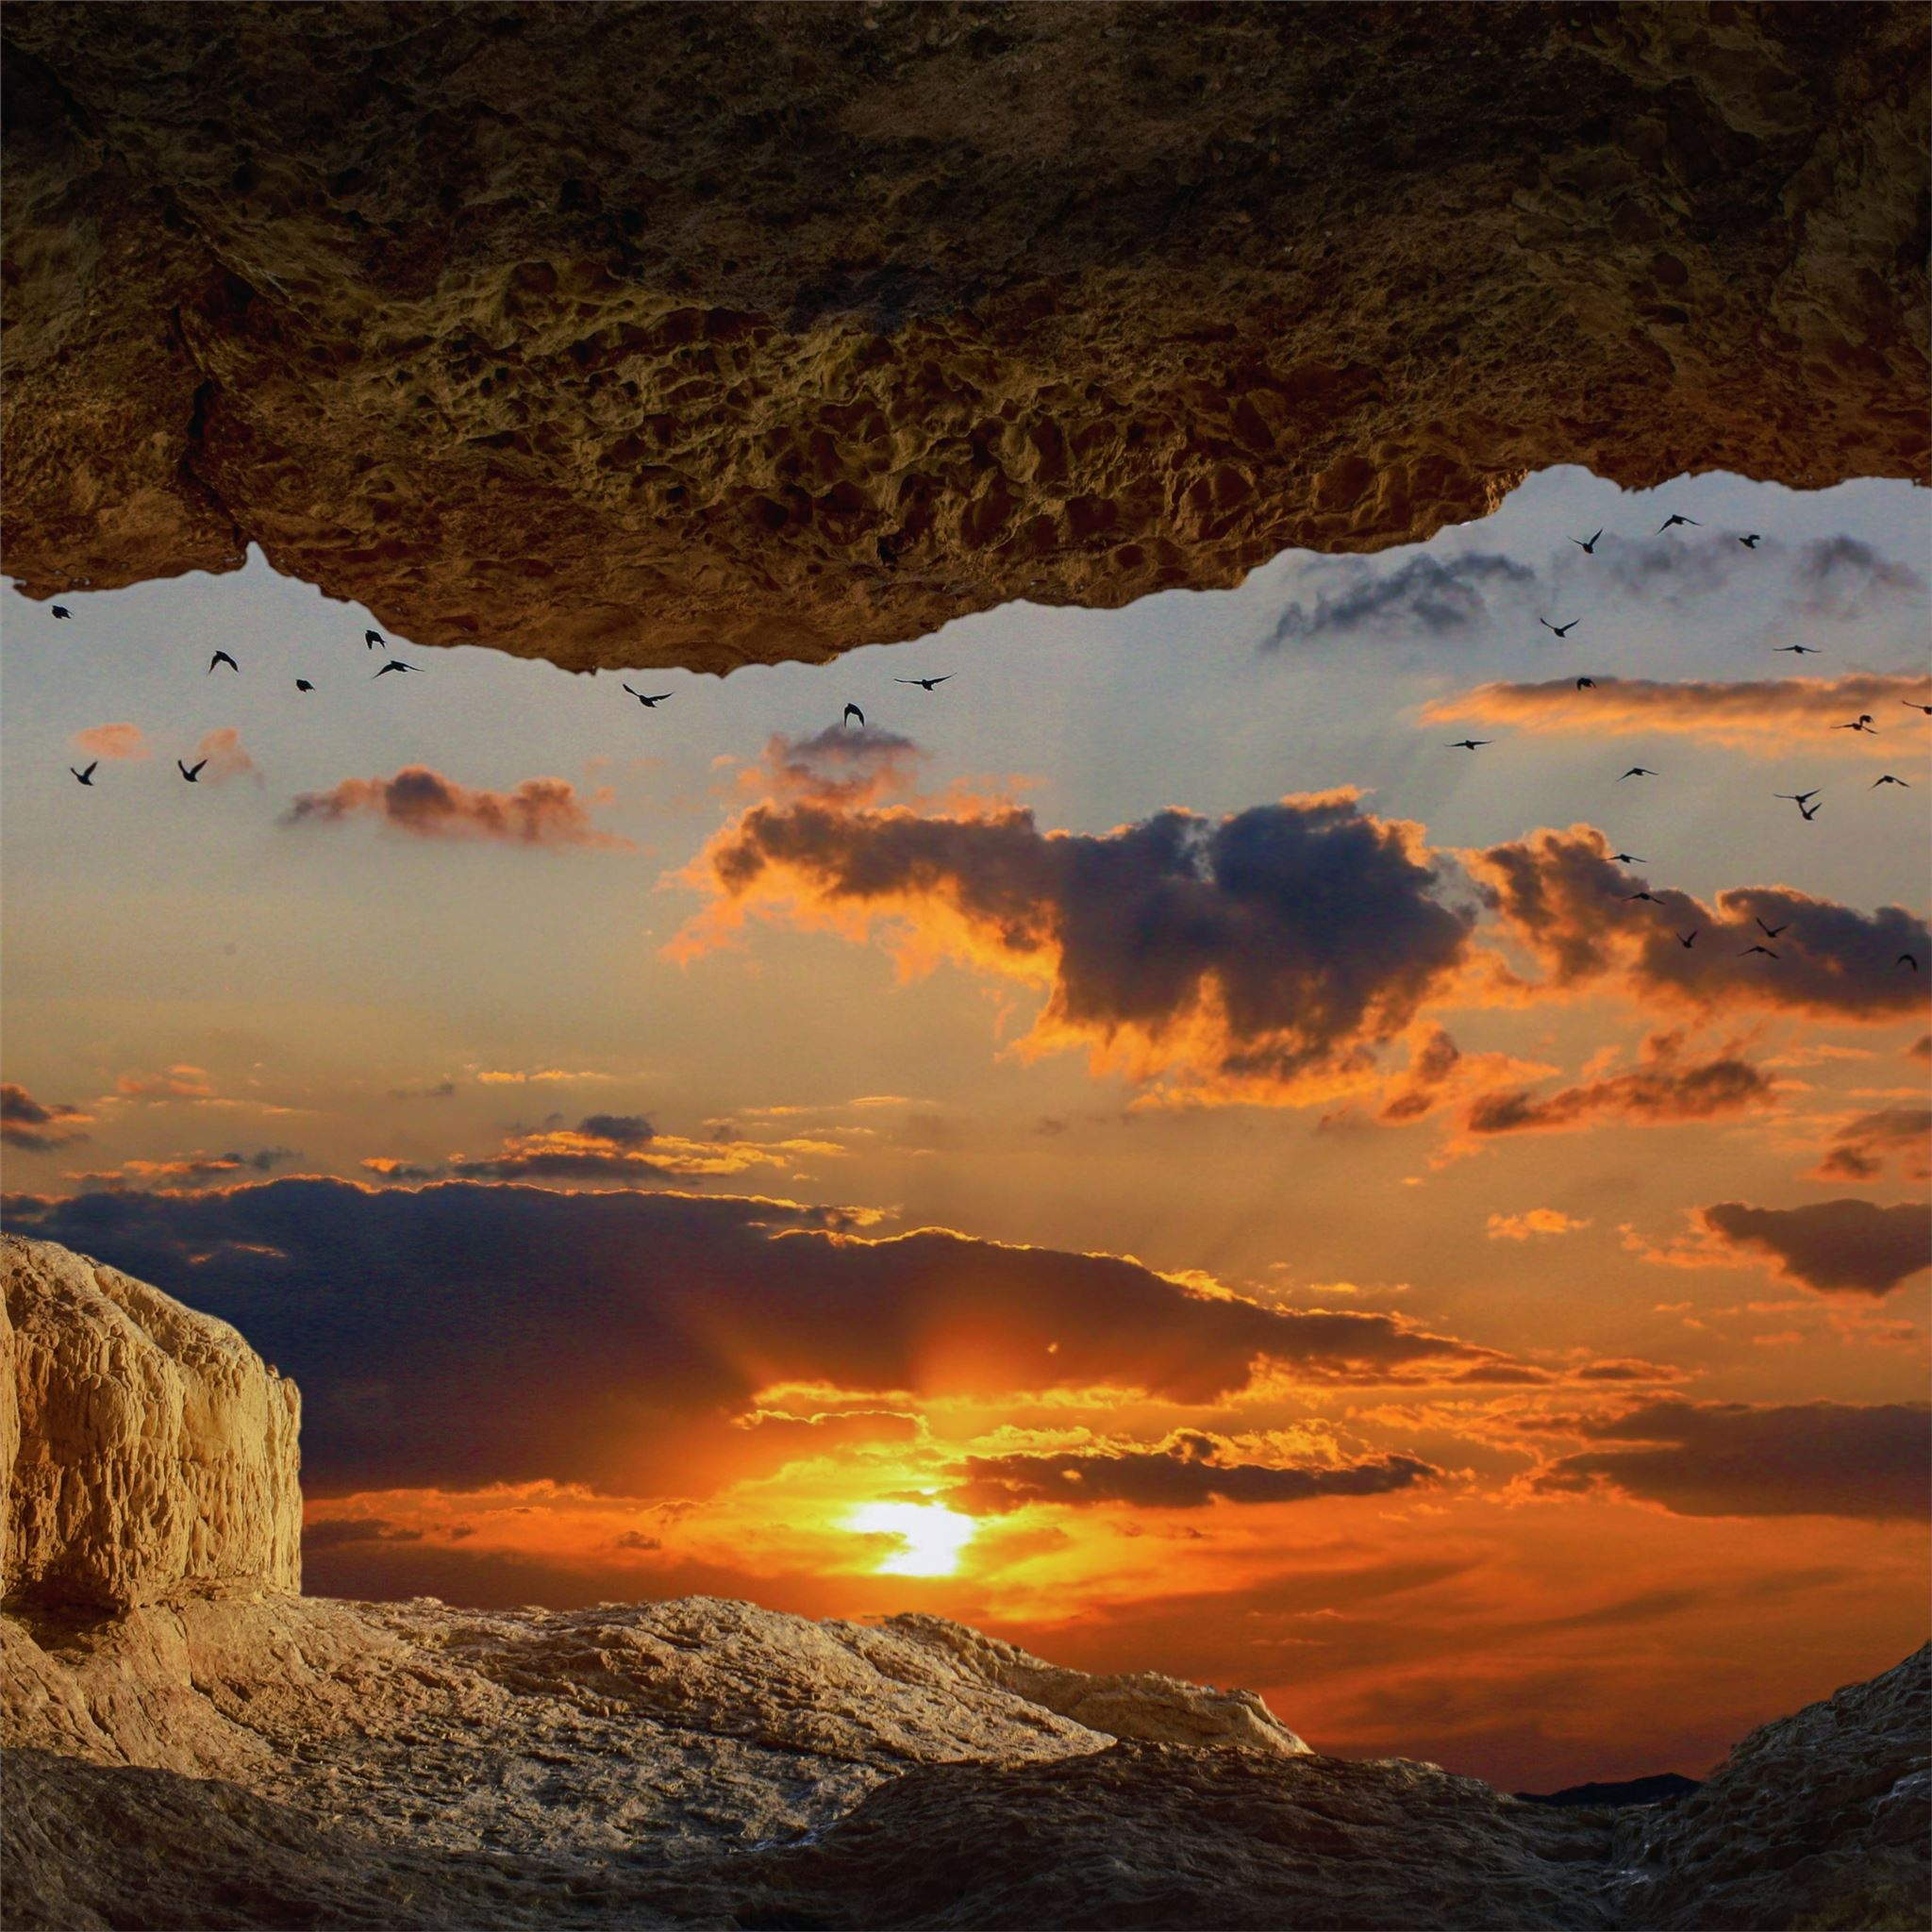 Cave Rock Sunset 8k IPad Wallpapers Free Download